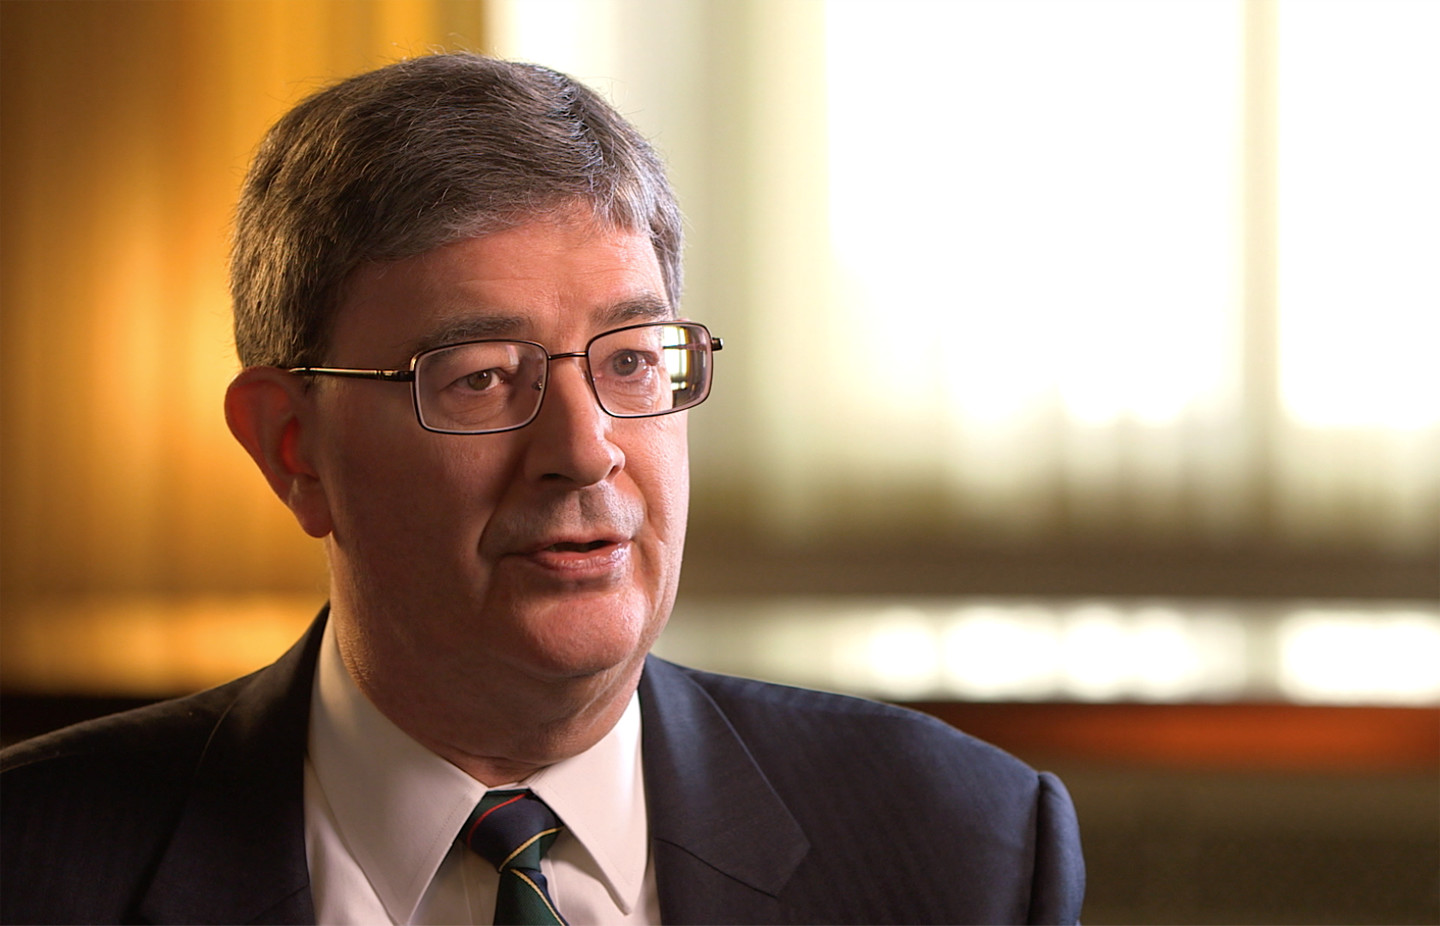 George Weigel, interviewee on John Paul II: Liberating a Continent, the Fall of Communism.